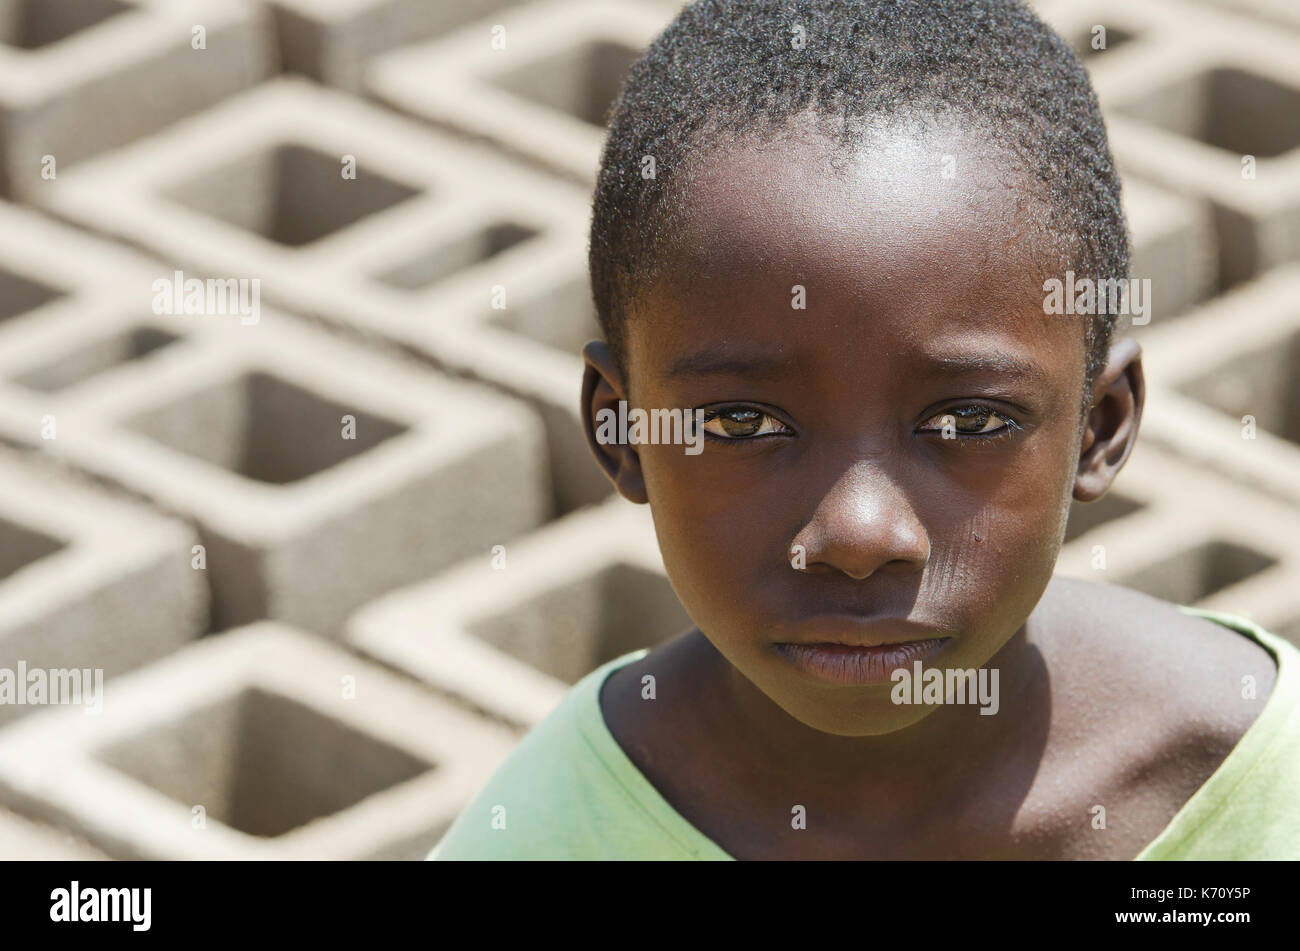 Close-up Portrait of African black Boy outdoors as a Child Labour Concept - Working Children - Stock Image